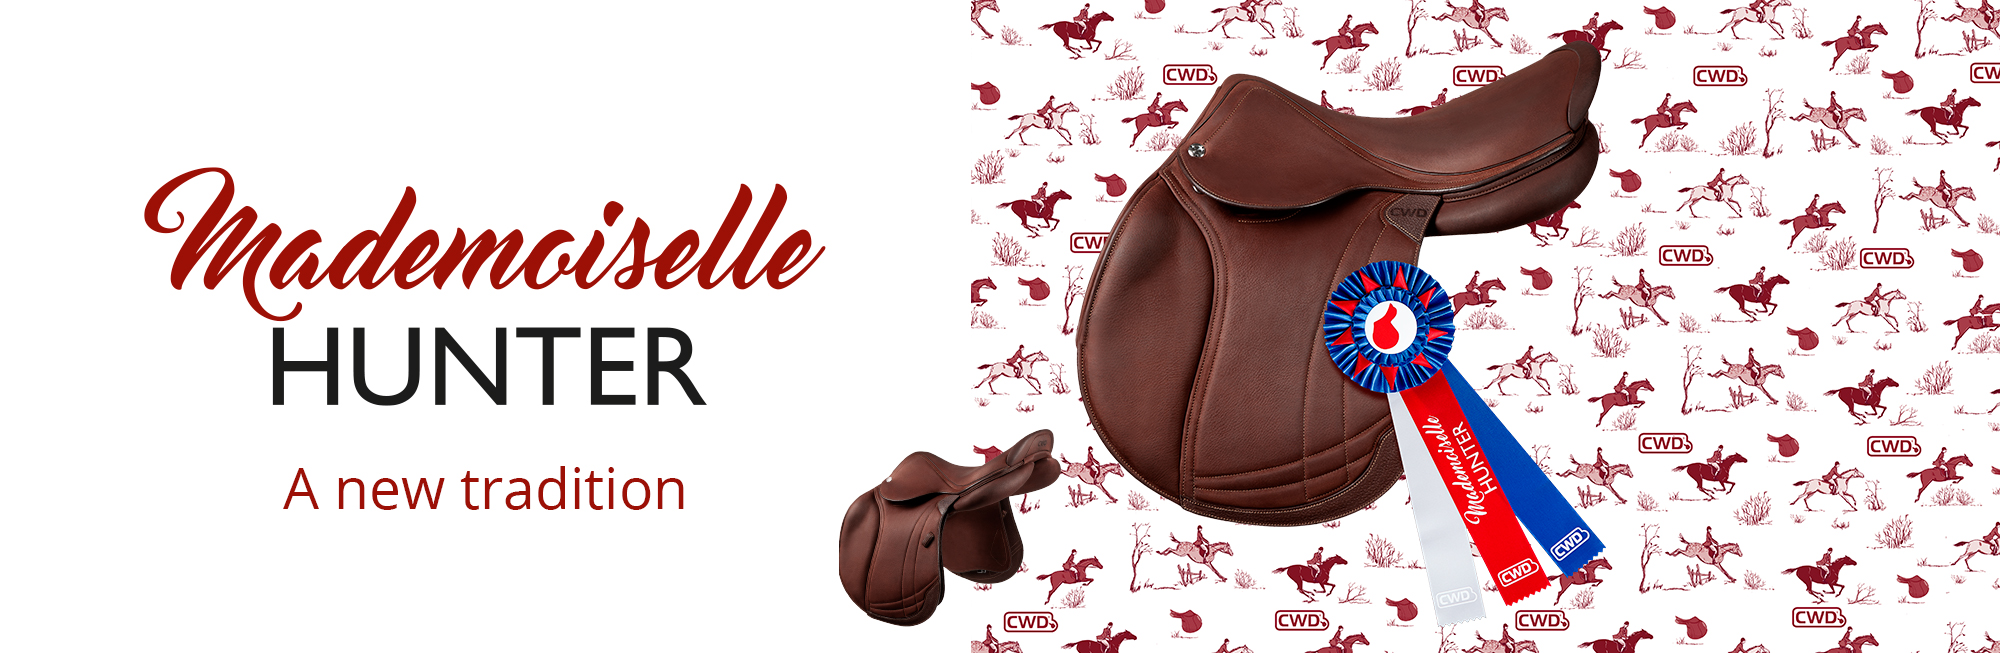 Hunter 2Gs Mademoiselle saddle